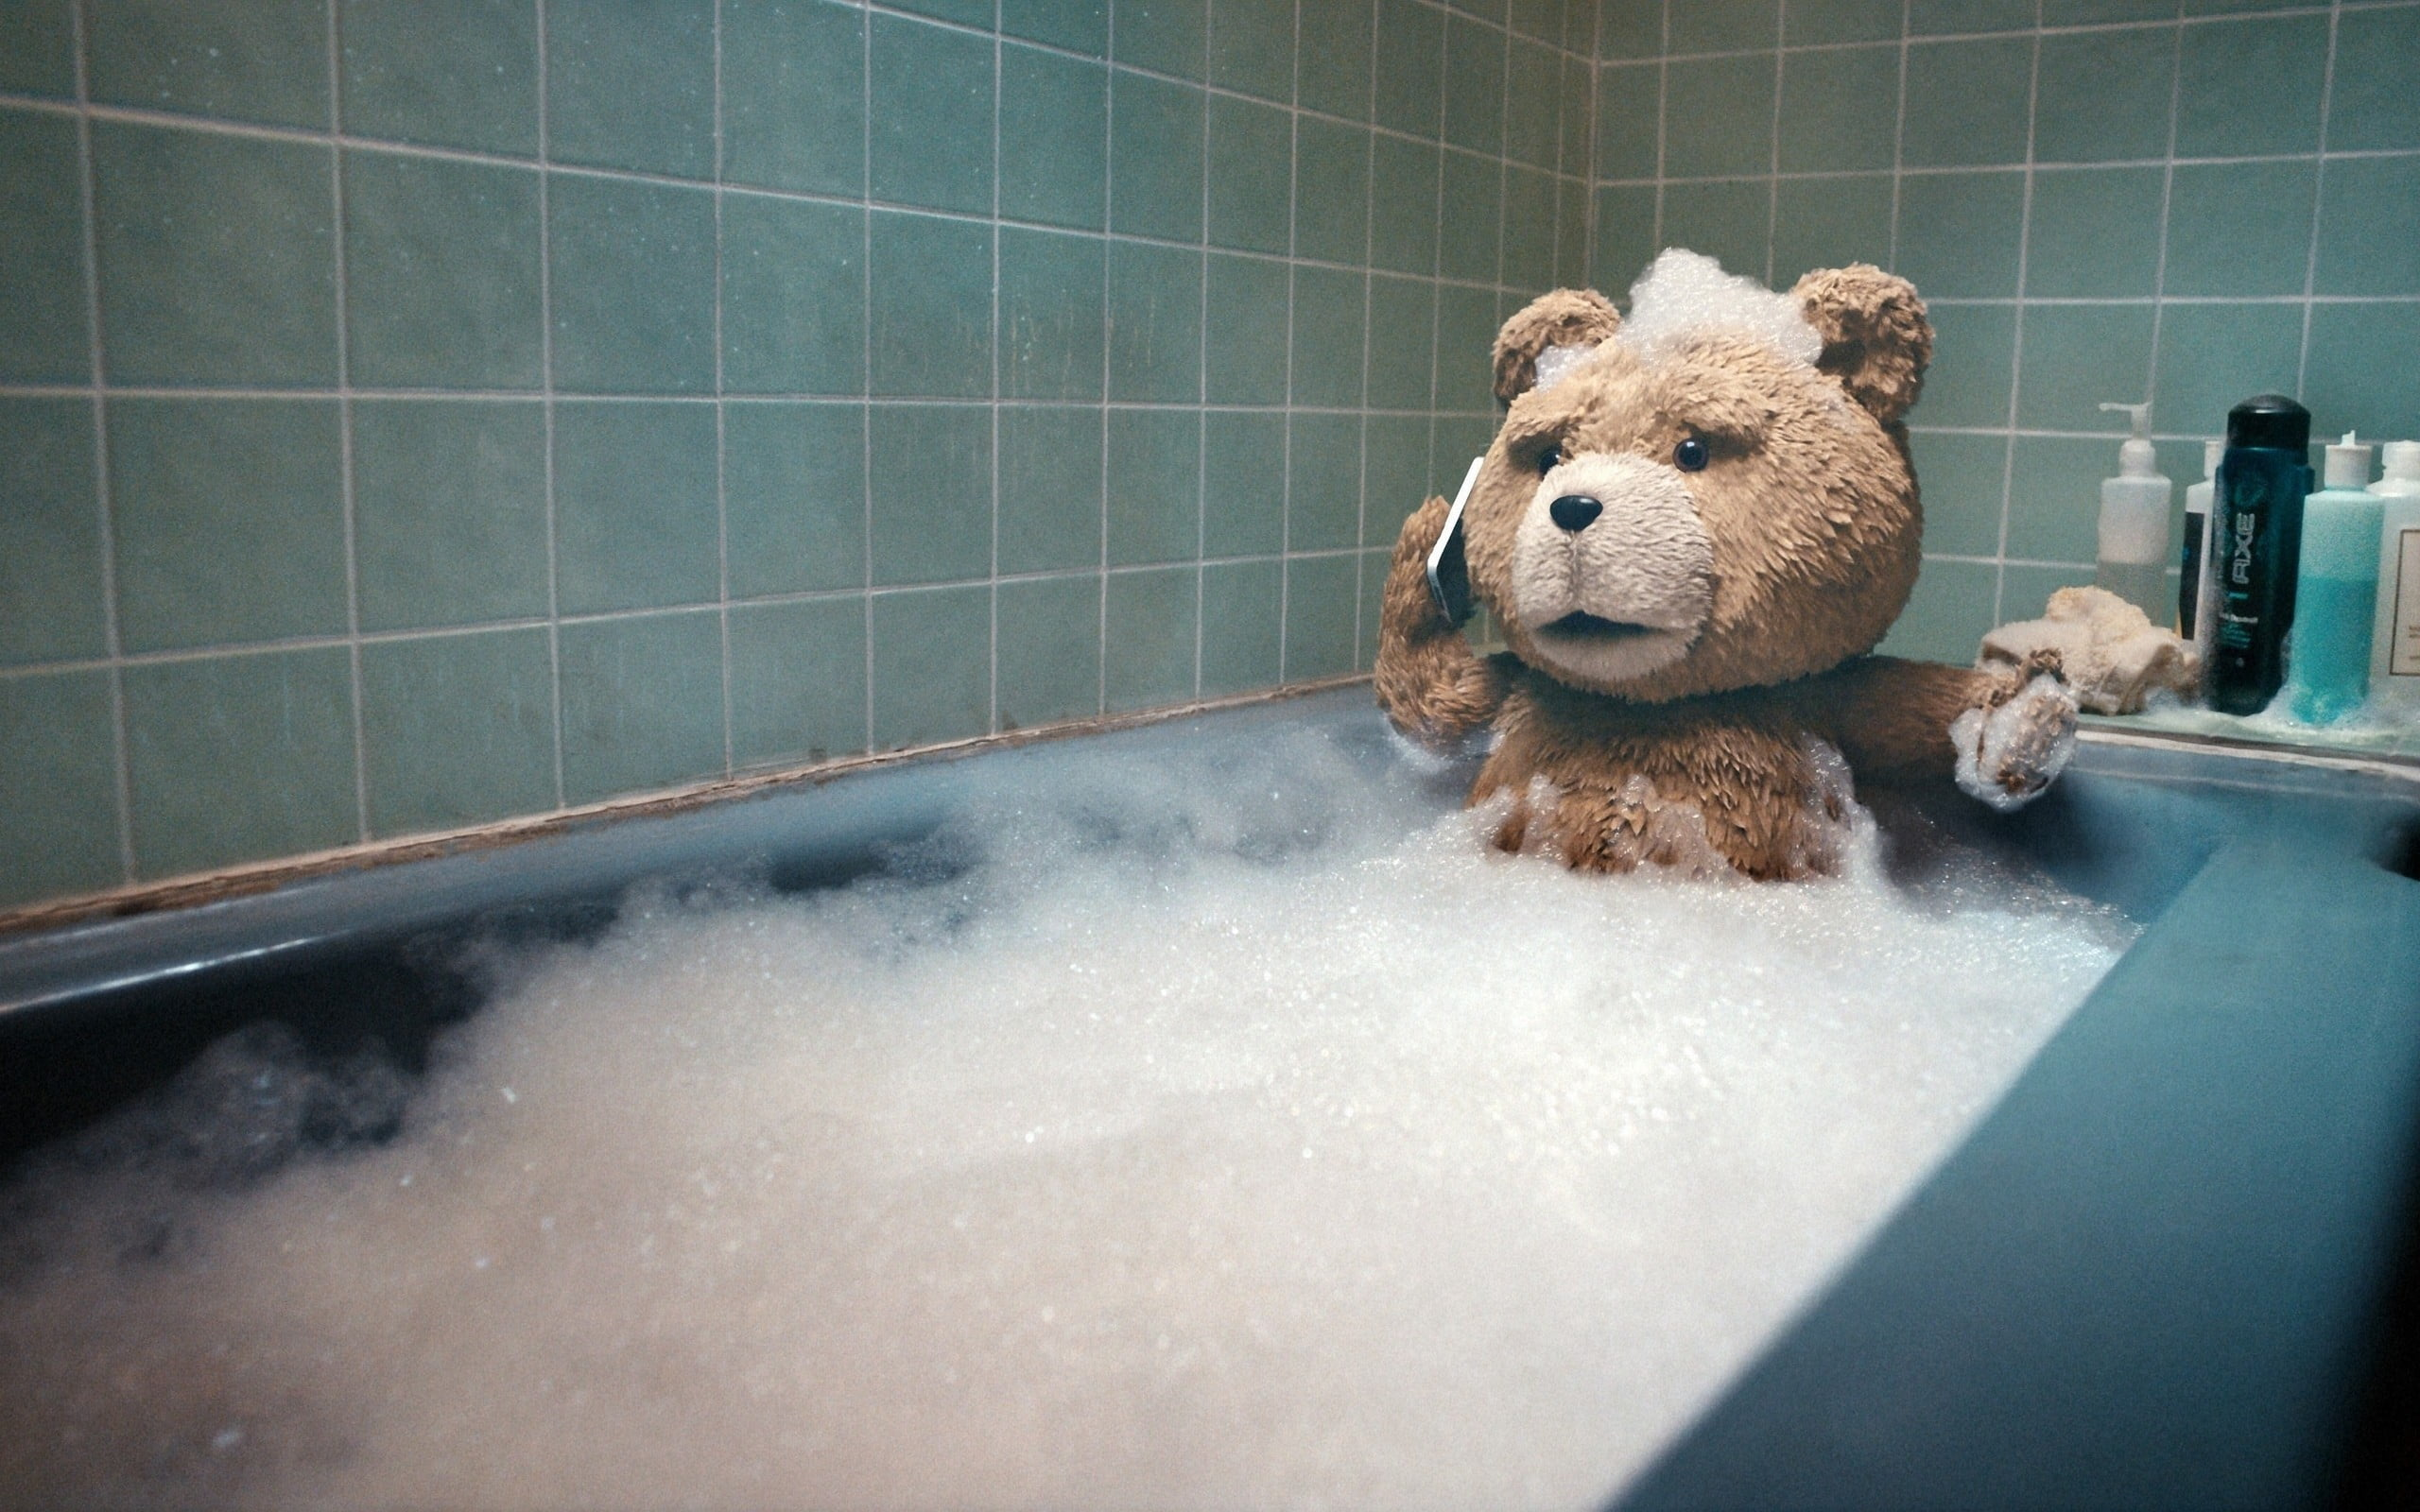 Ted on bath tub holding smartphone movie scene HD wallpaper 2560x1600